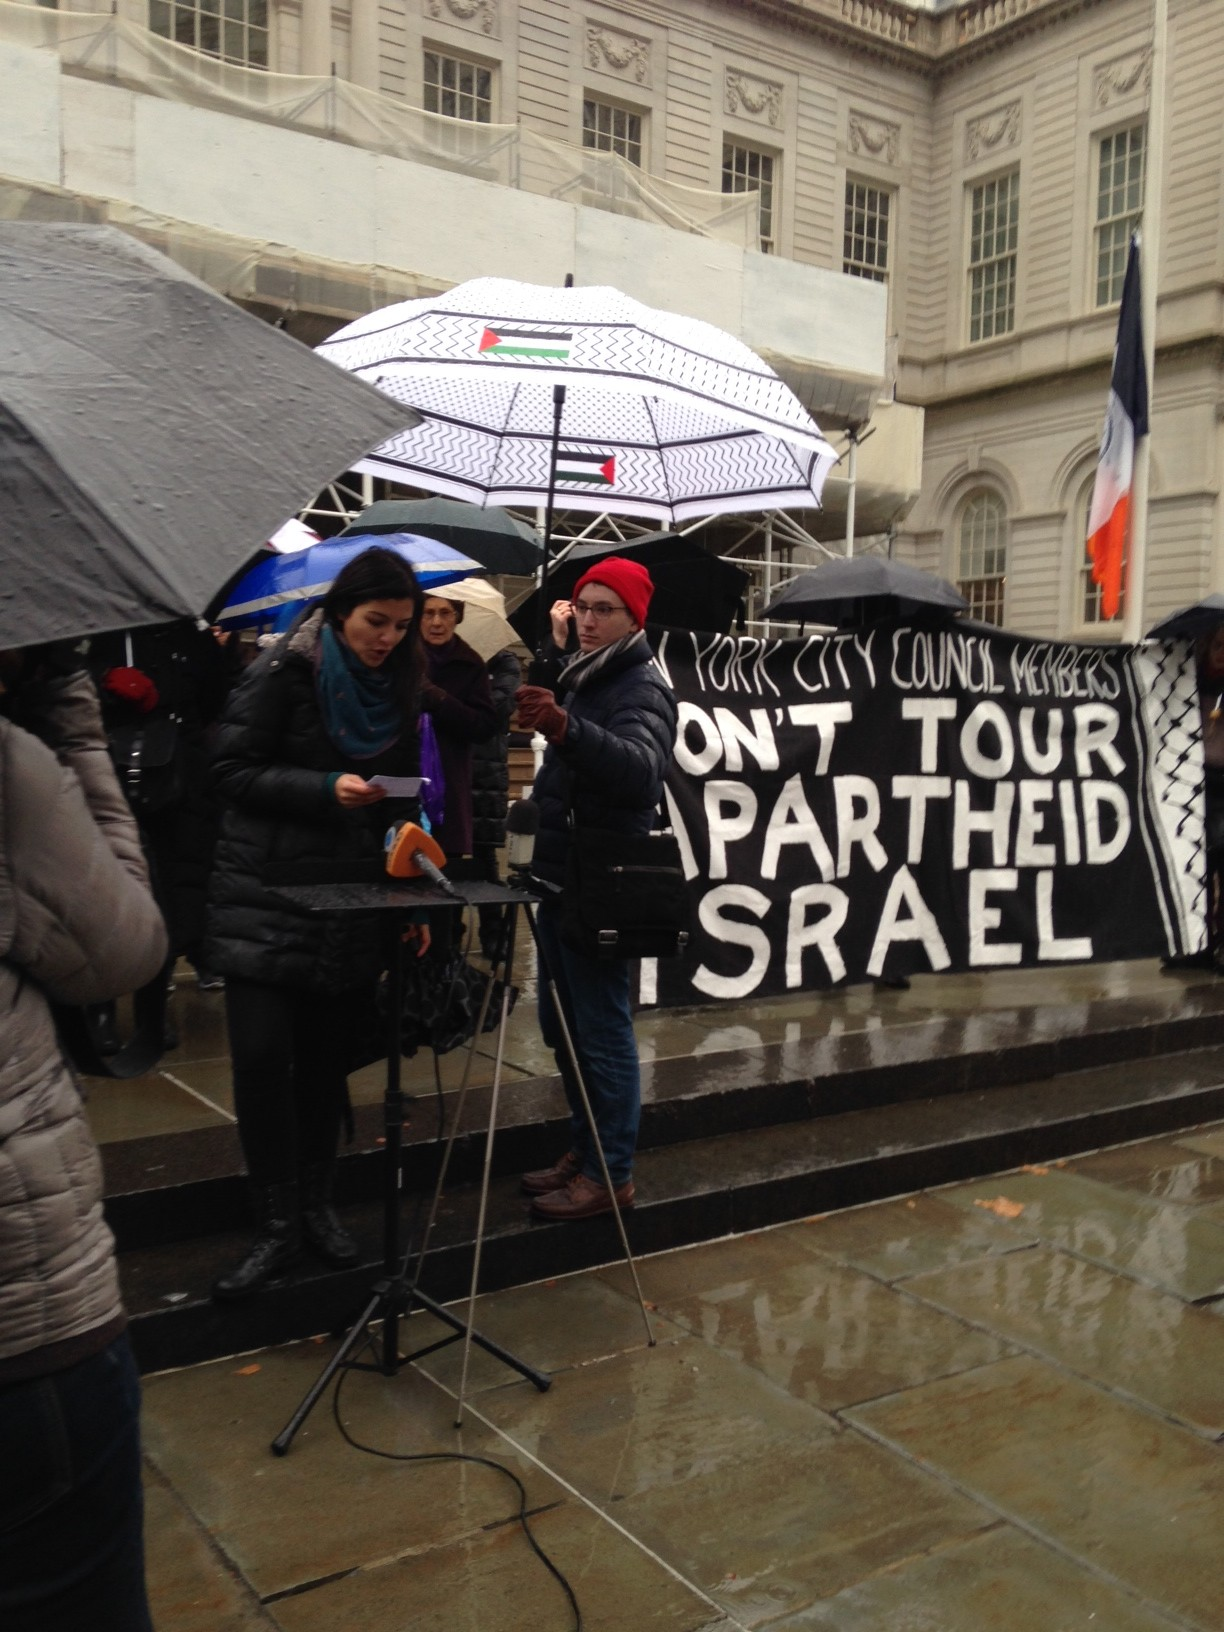 Fatin Jarara of Al-Awda New York, the Palestine Right to Return Coalition, speaks at the rally. (Photo: Eamon Murphy)